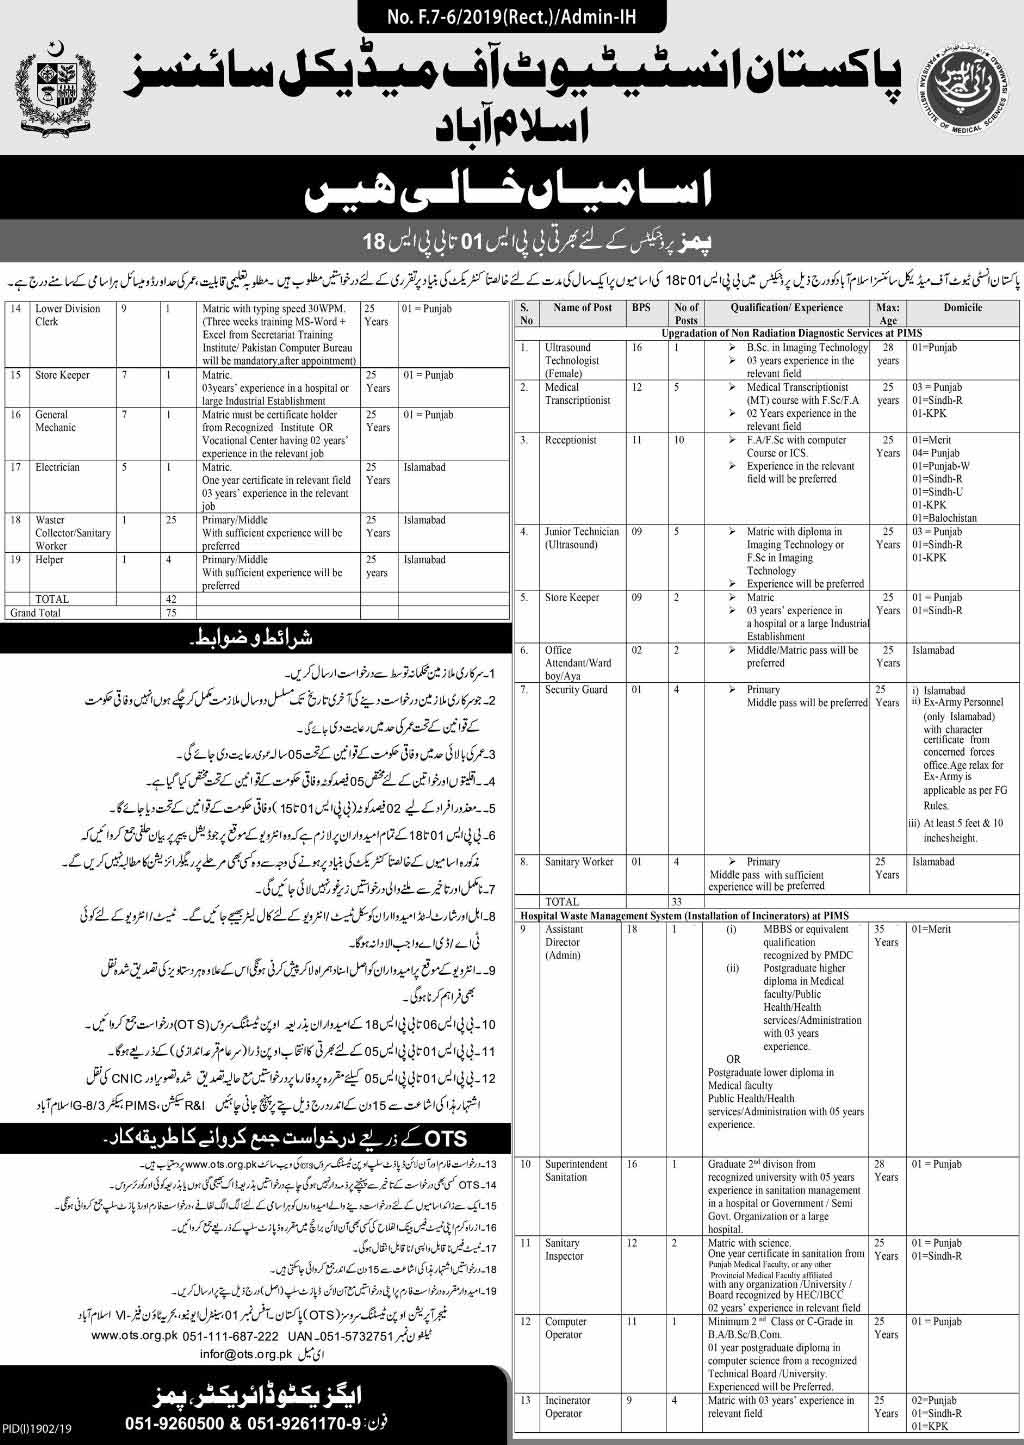 Pakistan Institute of Medical Sciences Islamabad OTS Jobs 2019